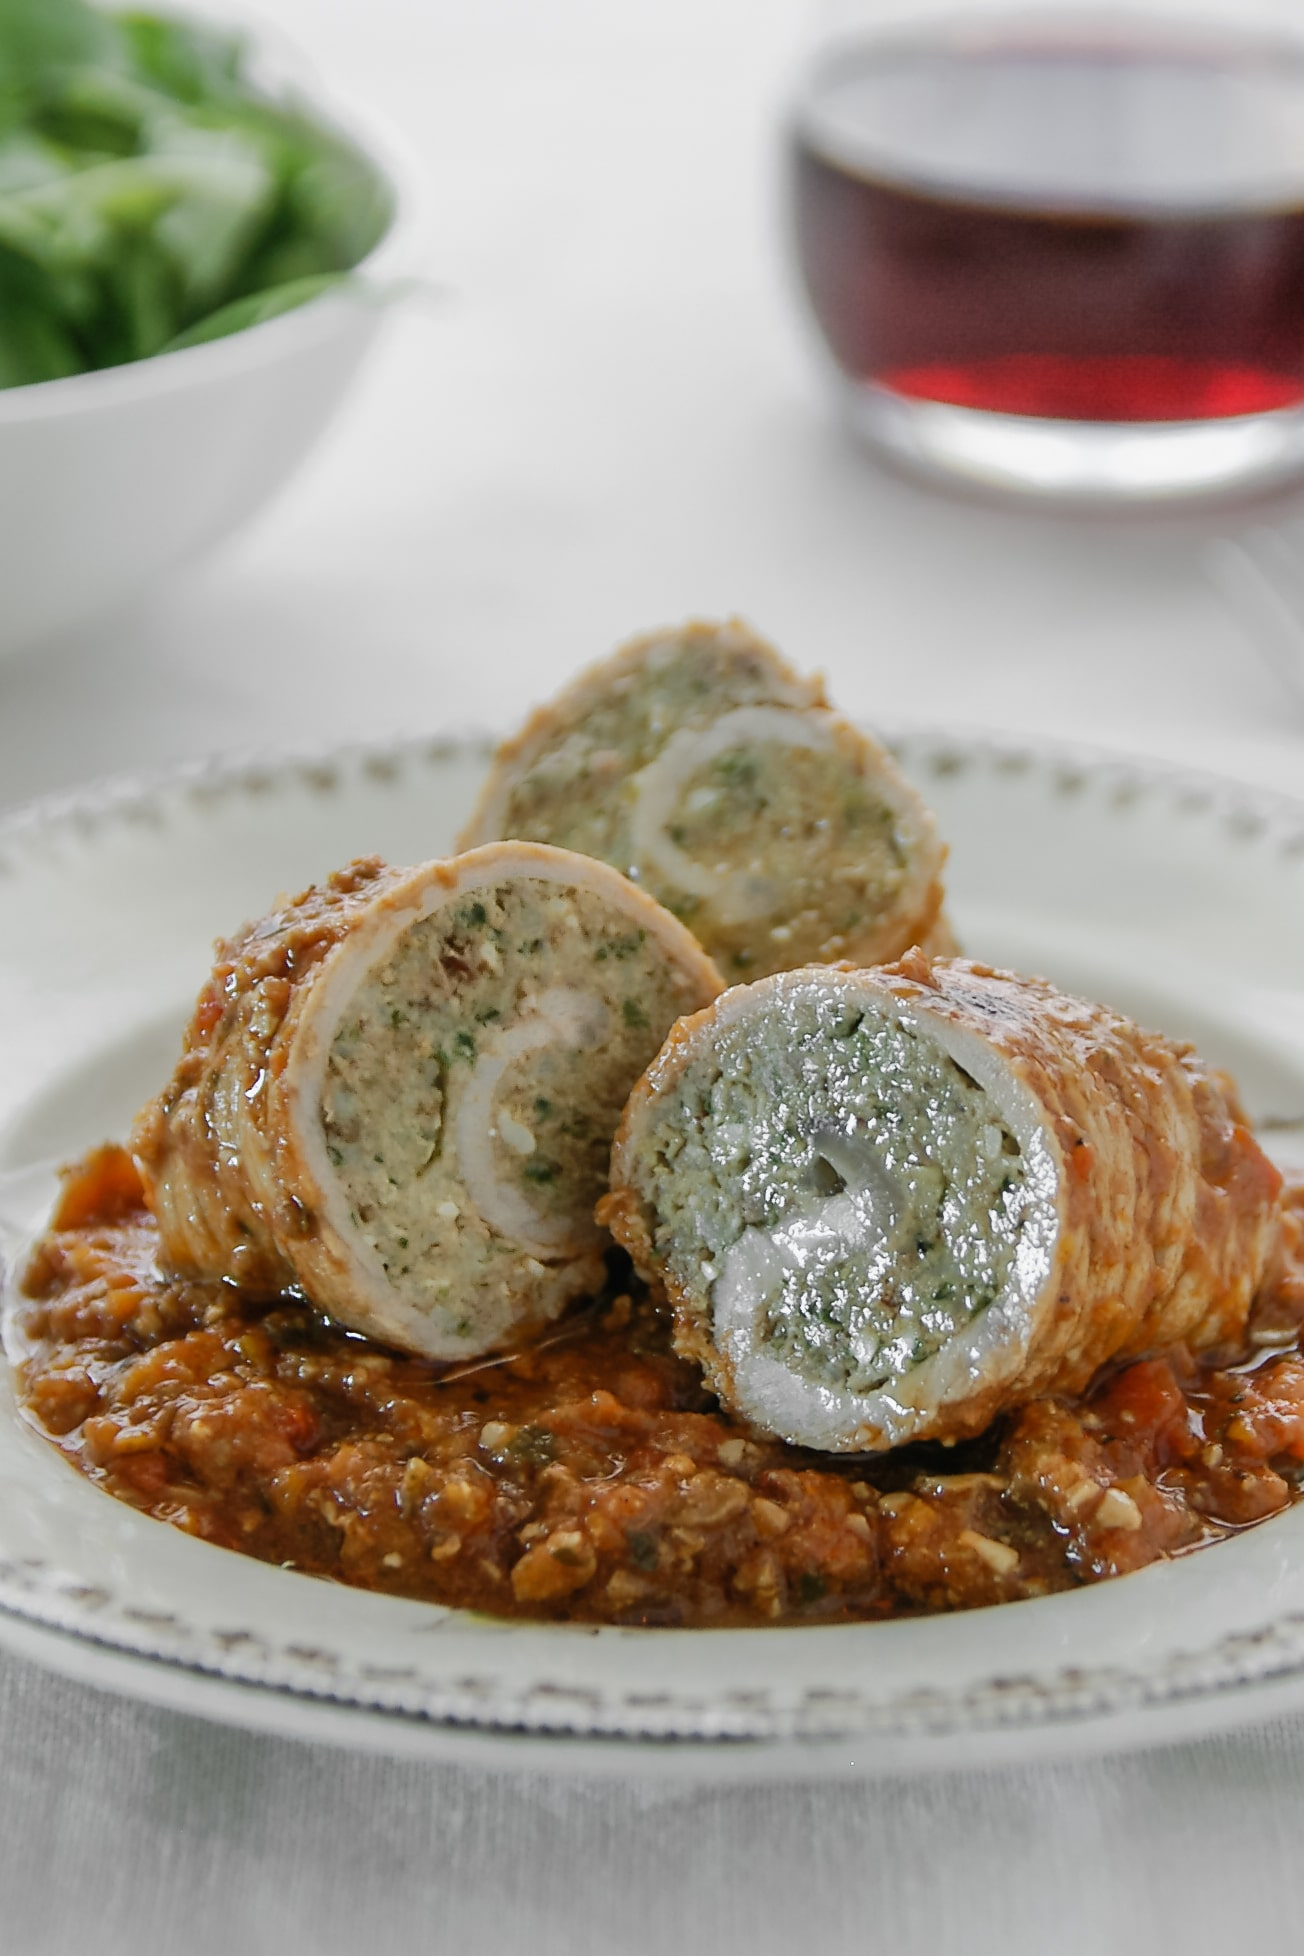 Tomaxelle, the Genoese veal rolls